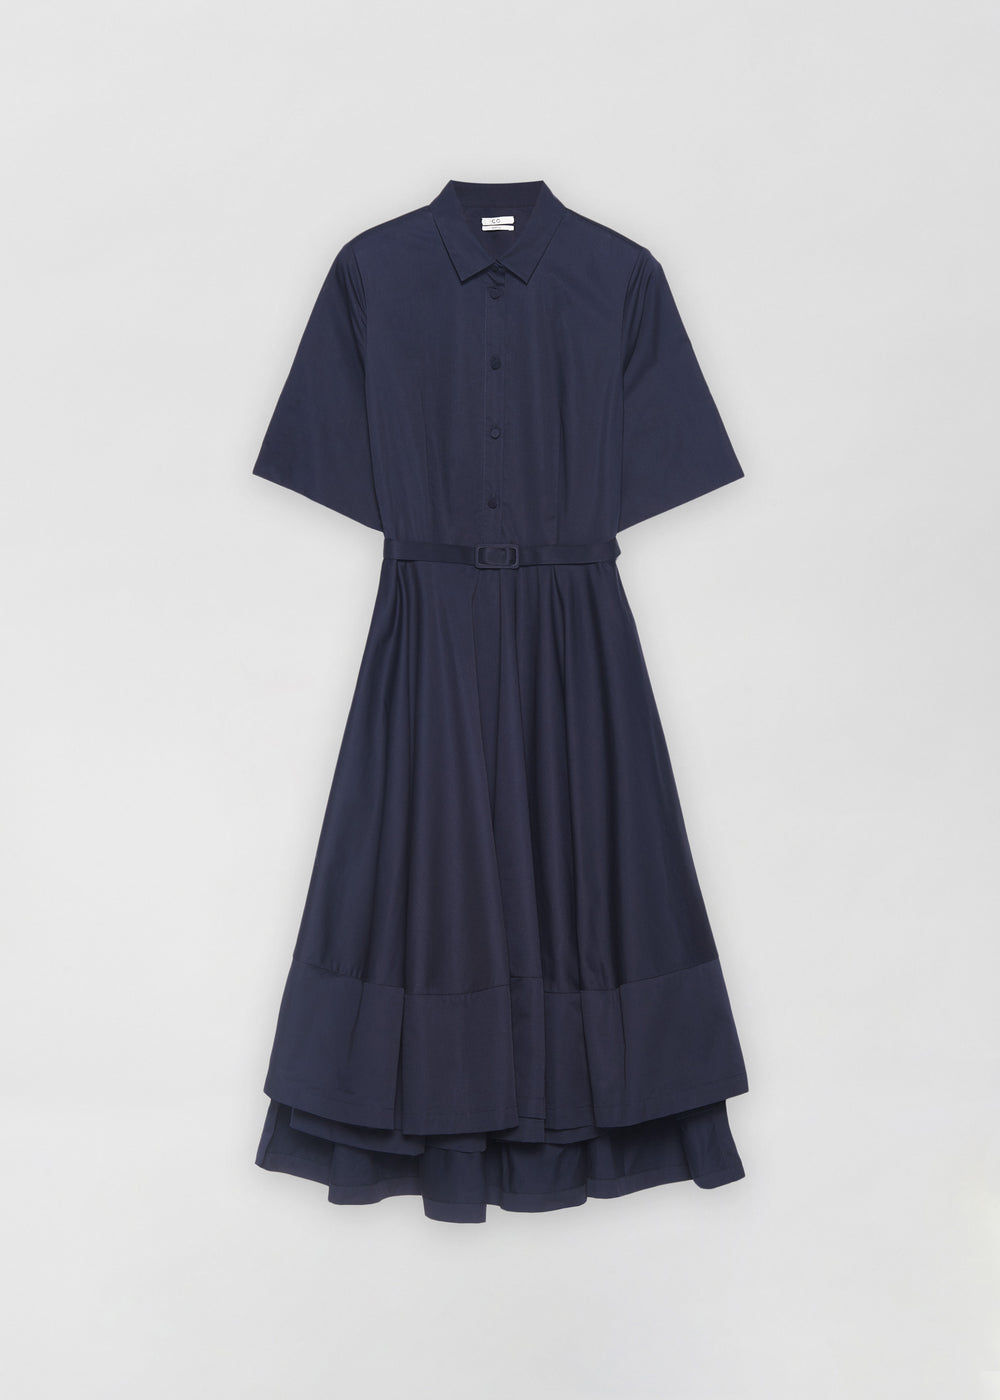 Short Sleeve Flared Dress in Cotton Poplin- Taupe in Navy by Co Collections